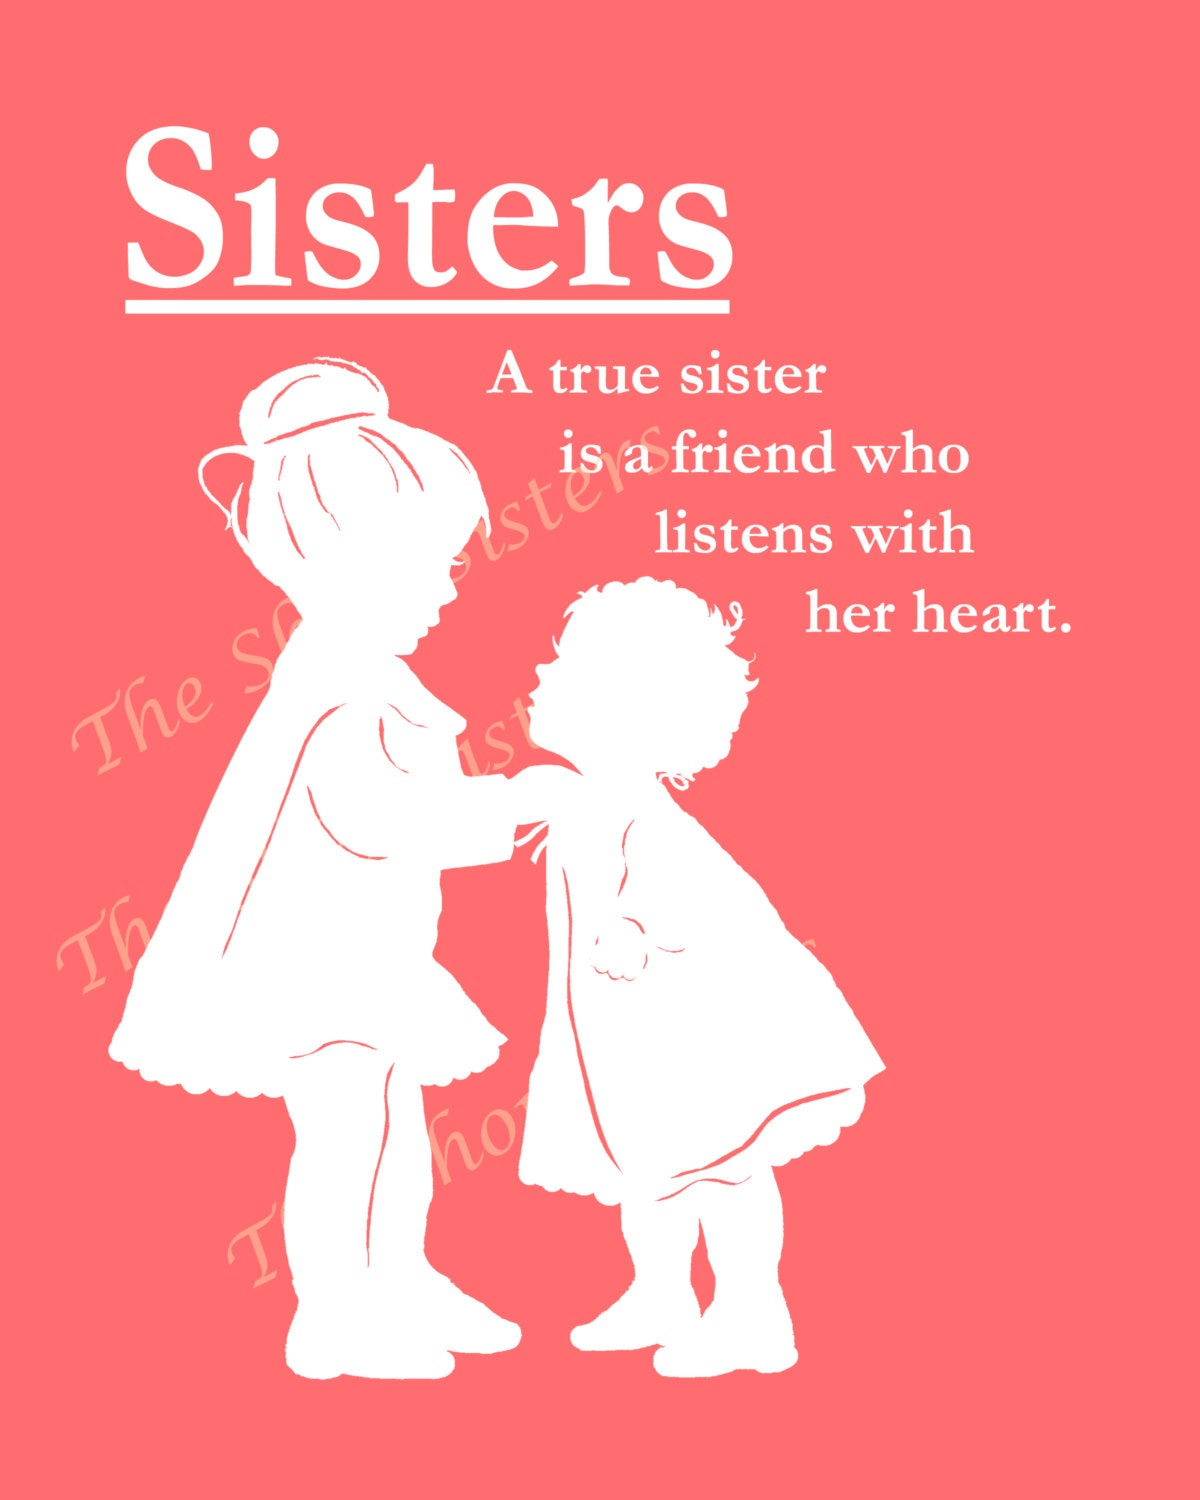 Sisters poem silhouette pink and white 8 x 10 by theshopsisters